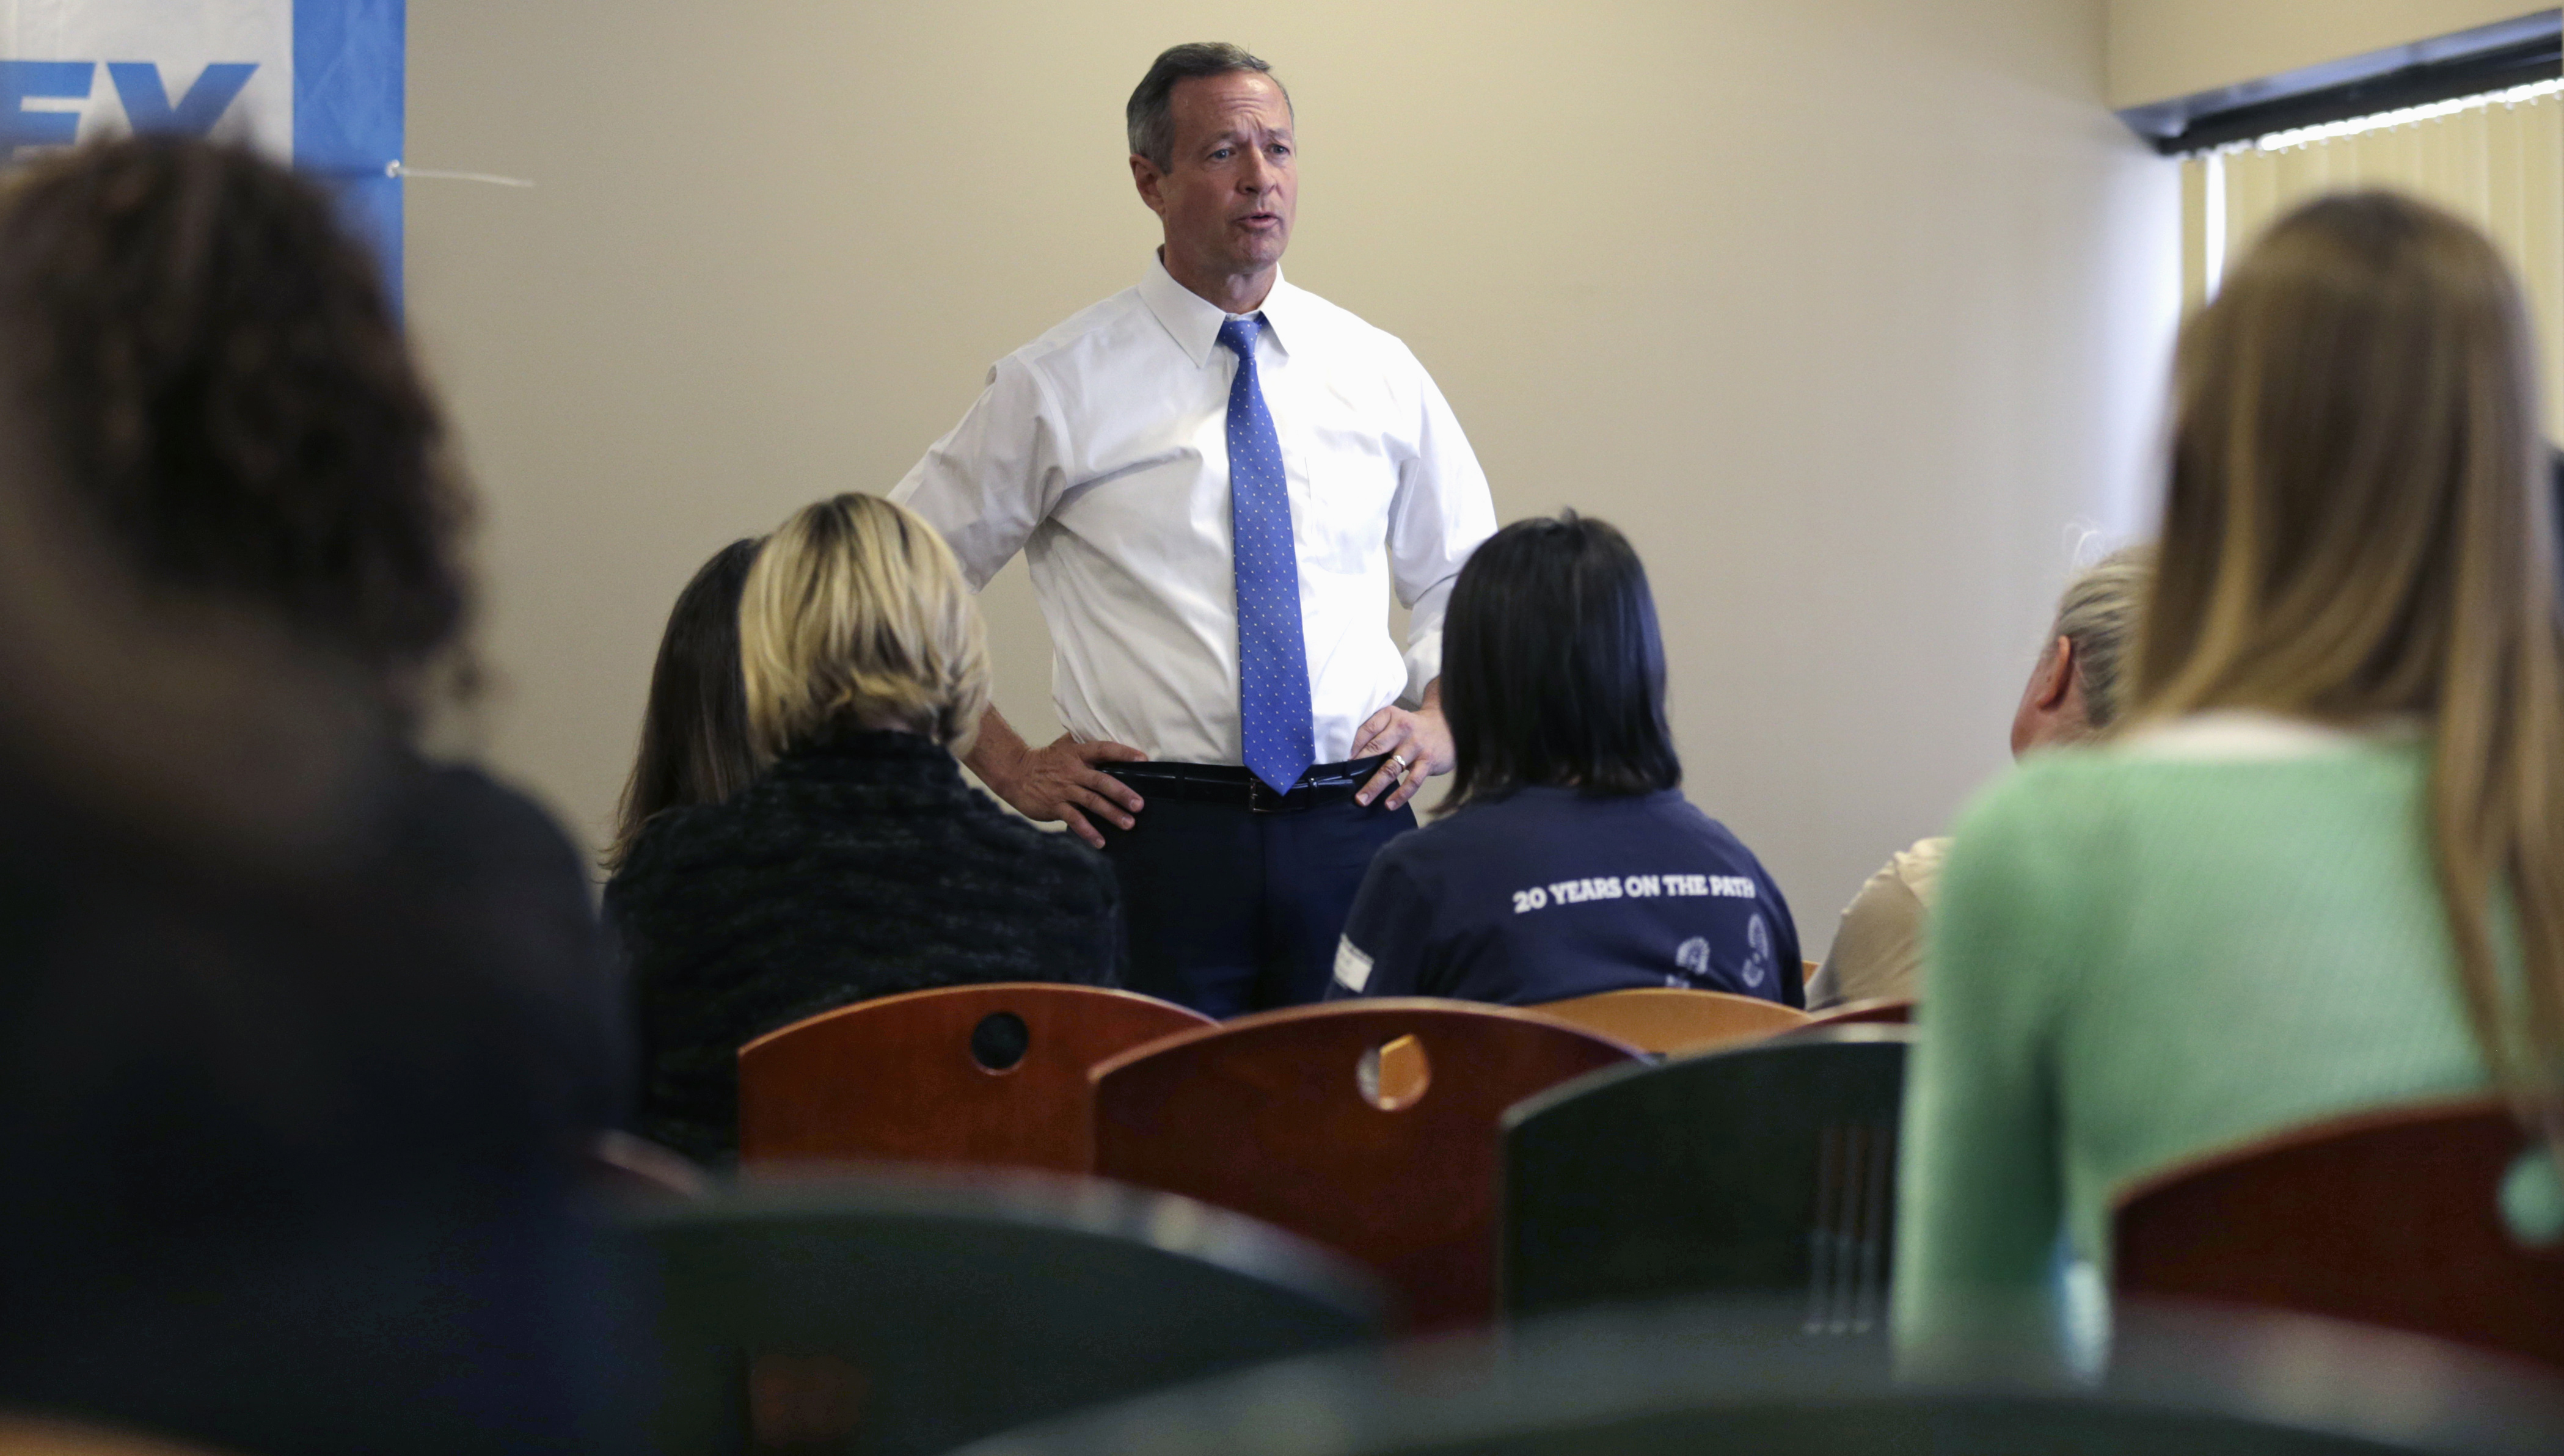 Democratic presidential candidate, former Maryland Gov. Martin O'Malley talks with employees during a campaign stop at at the Timberland apparel company in Stratham, N.H., Thursday, Jan. 21, 2016.